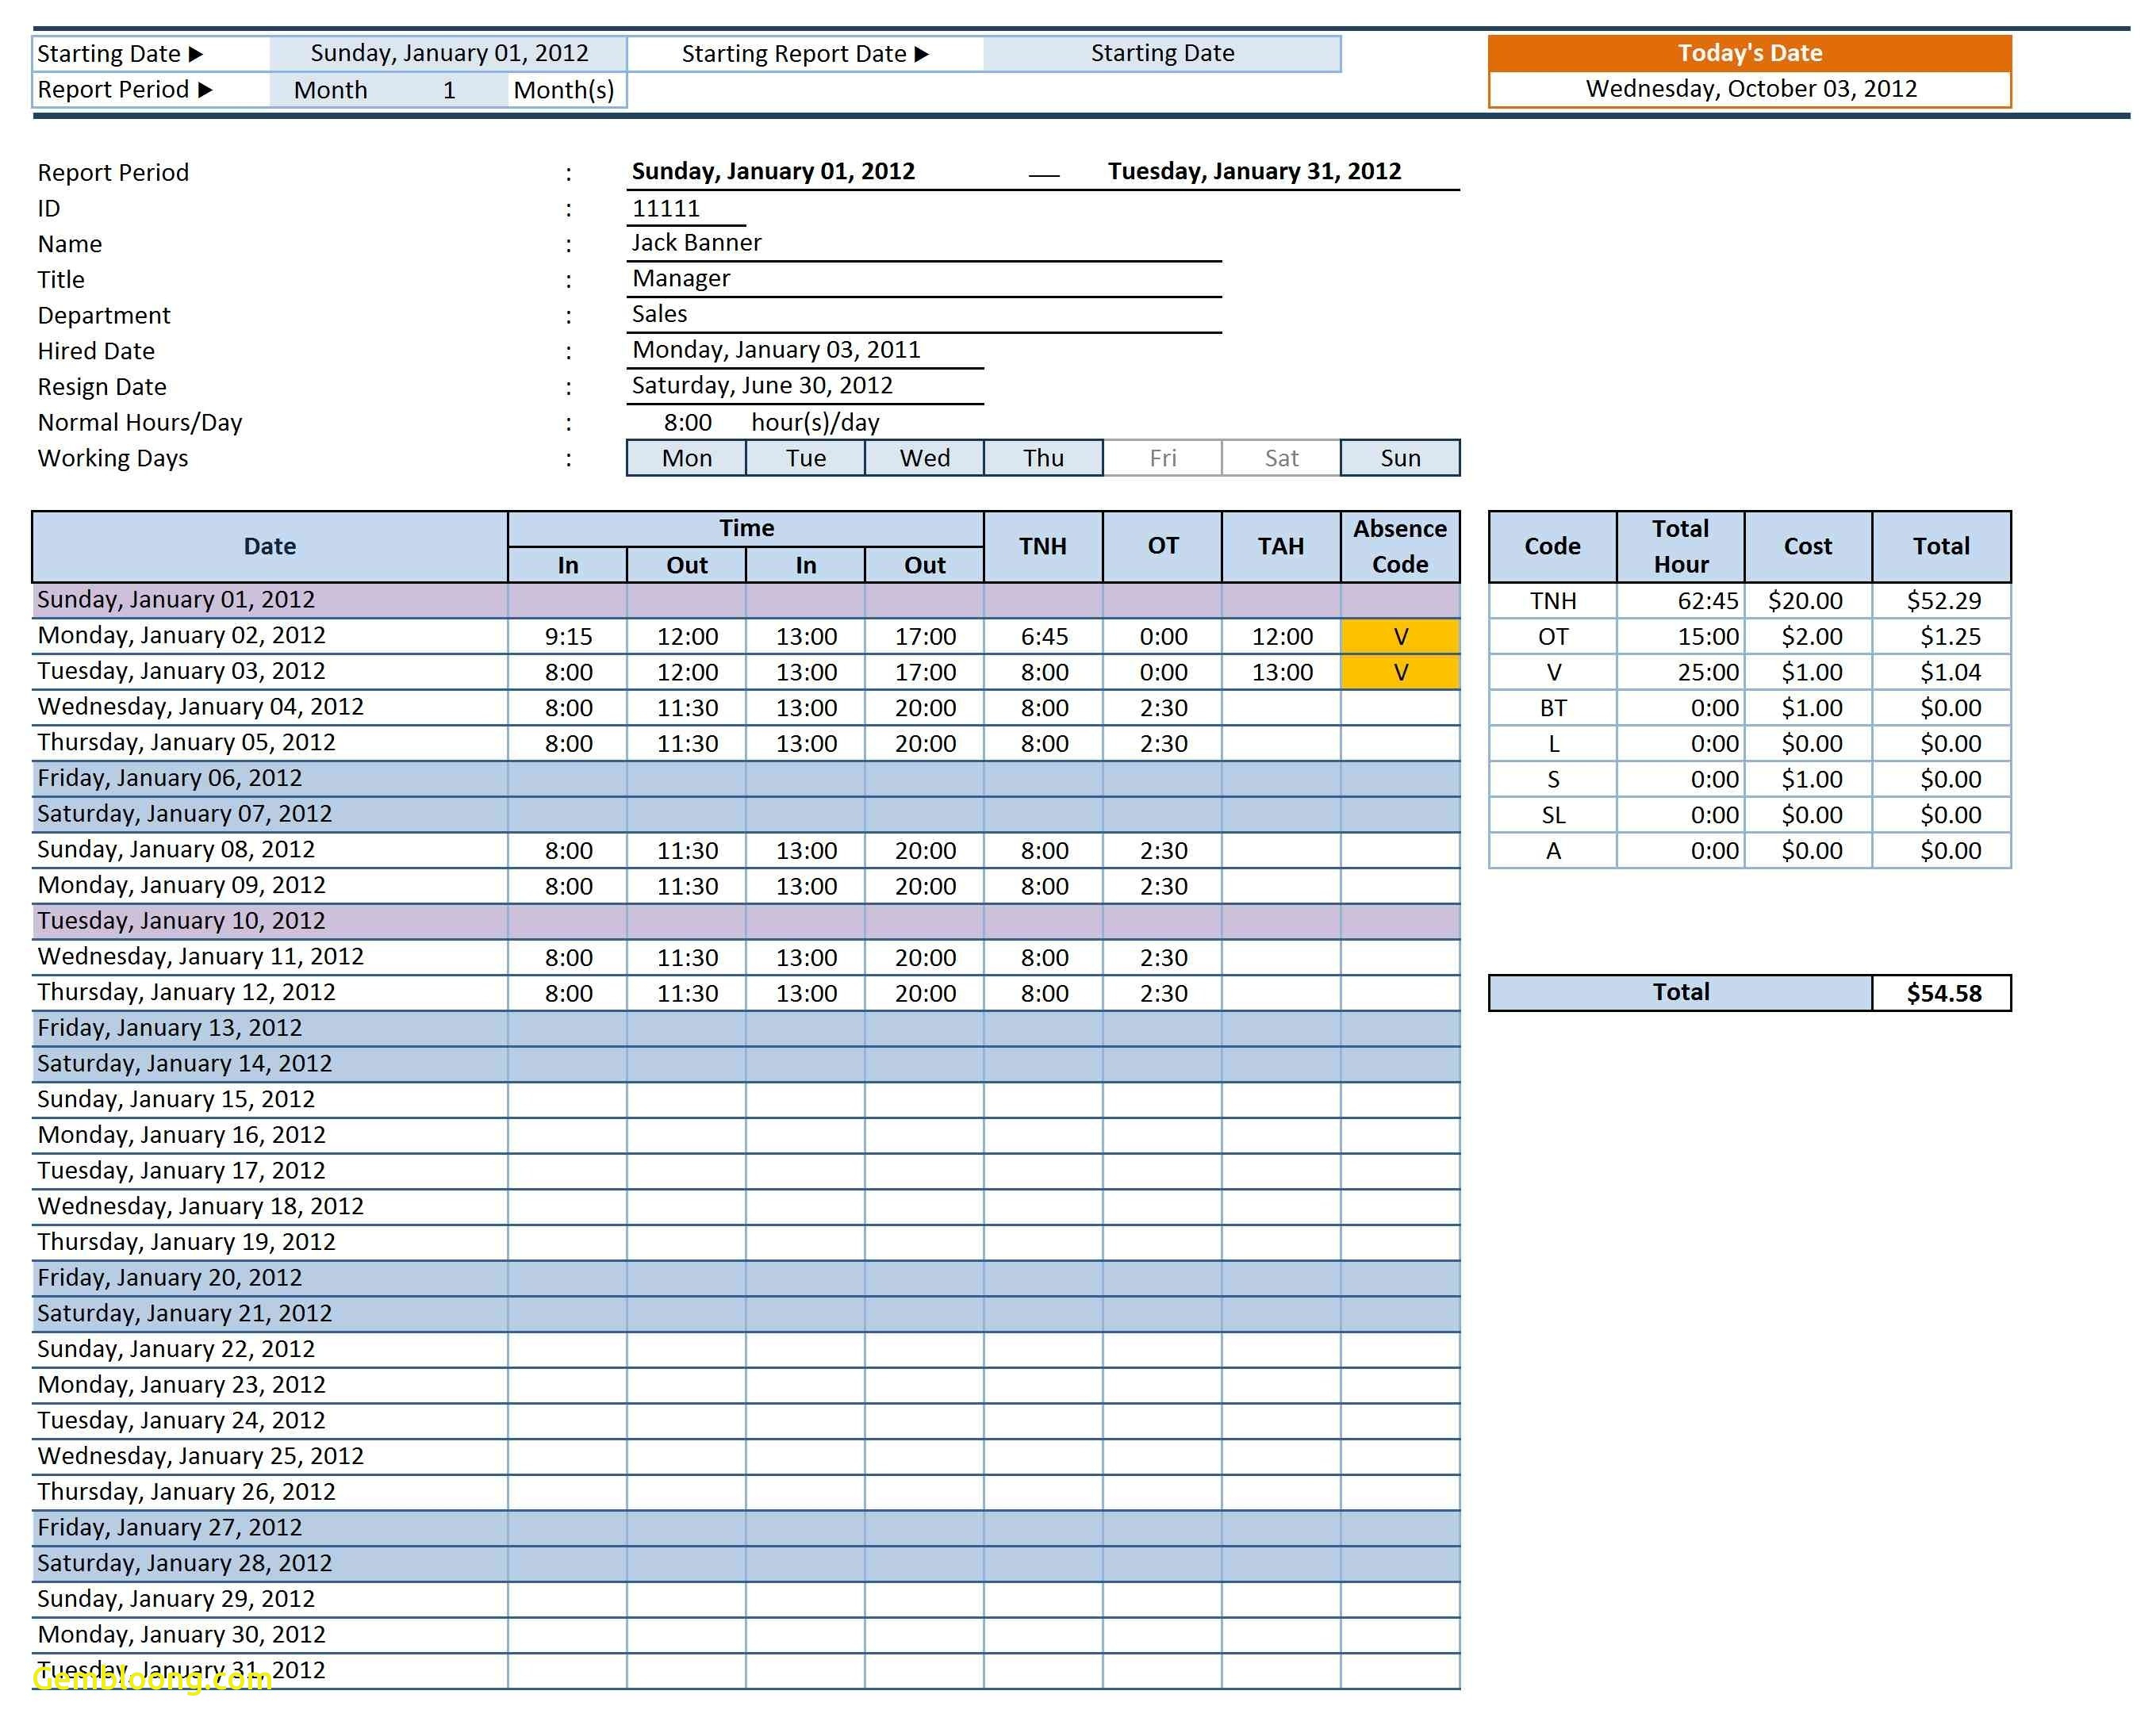 Project Management Excel Templates Free Download | My Spreadsheet In Project Management Templates In Excel For Free Download